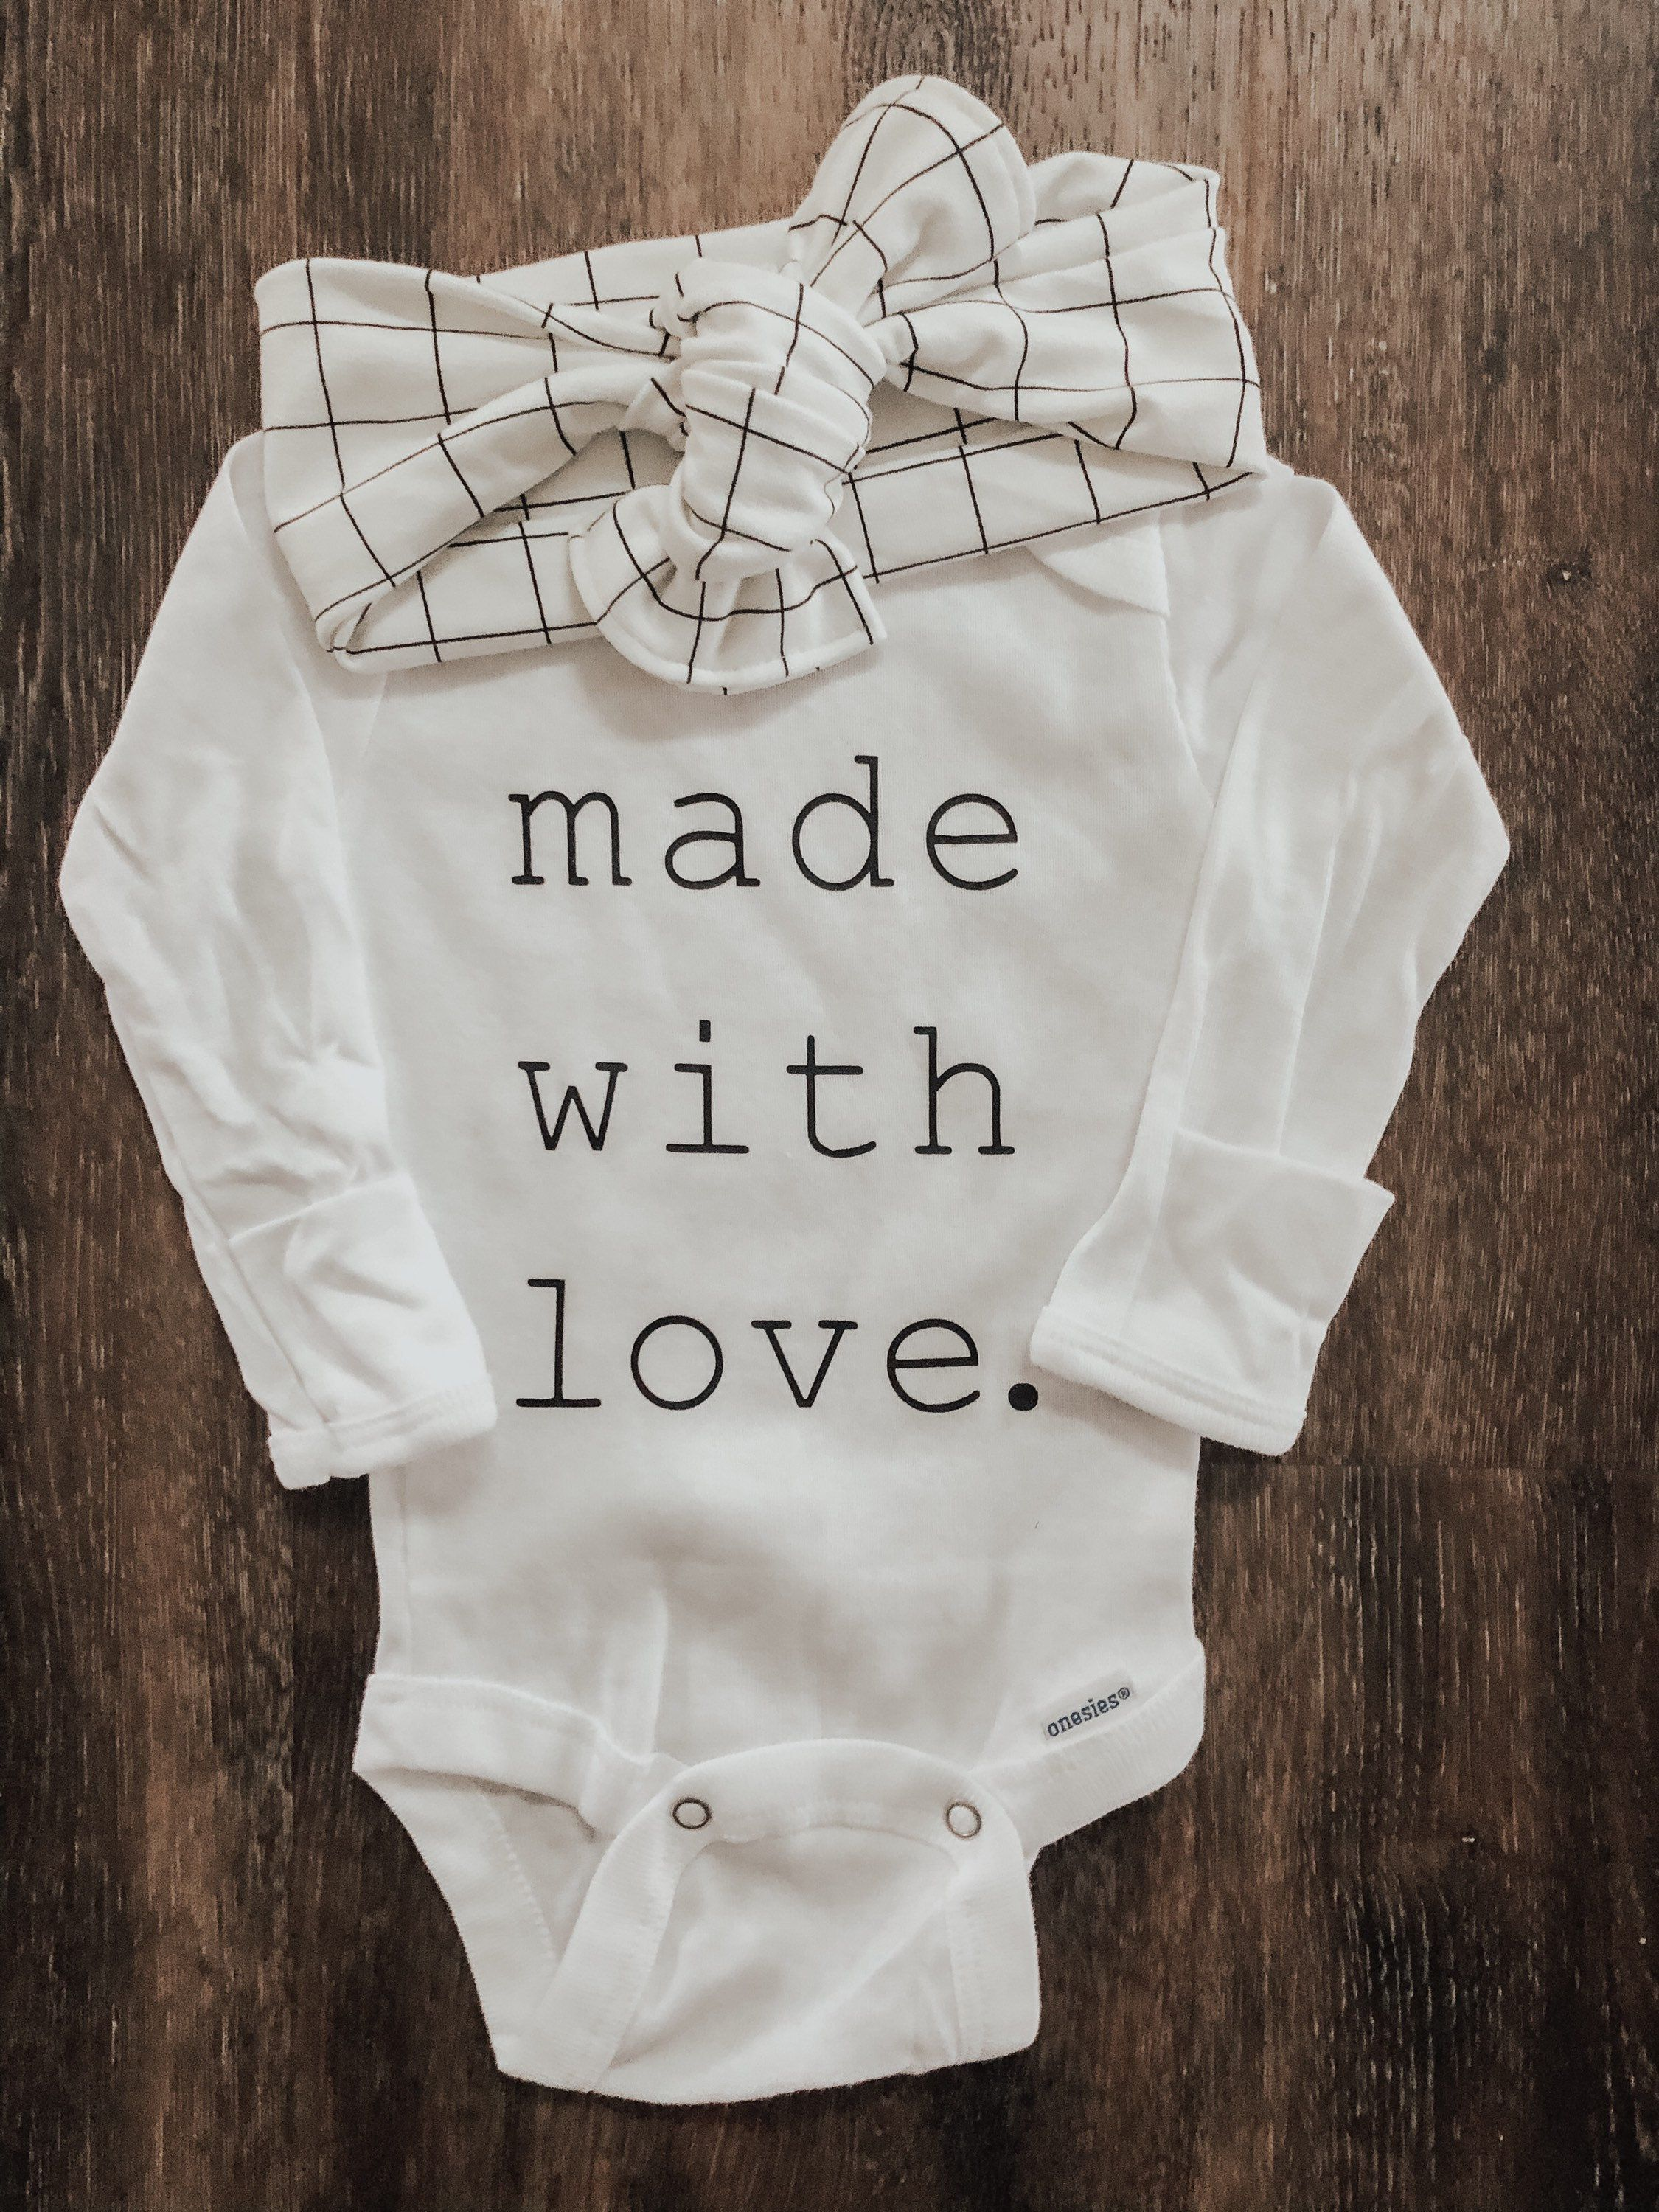 Made With Love Loved Newborn Outfit Gender Neutral Shirt Etsy Newborn Boy Clothes Newborn Girl Outfits Newborn Outfit